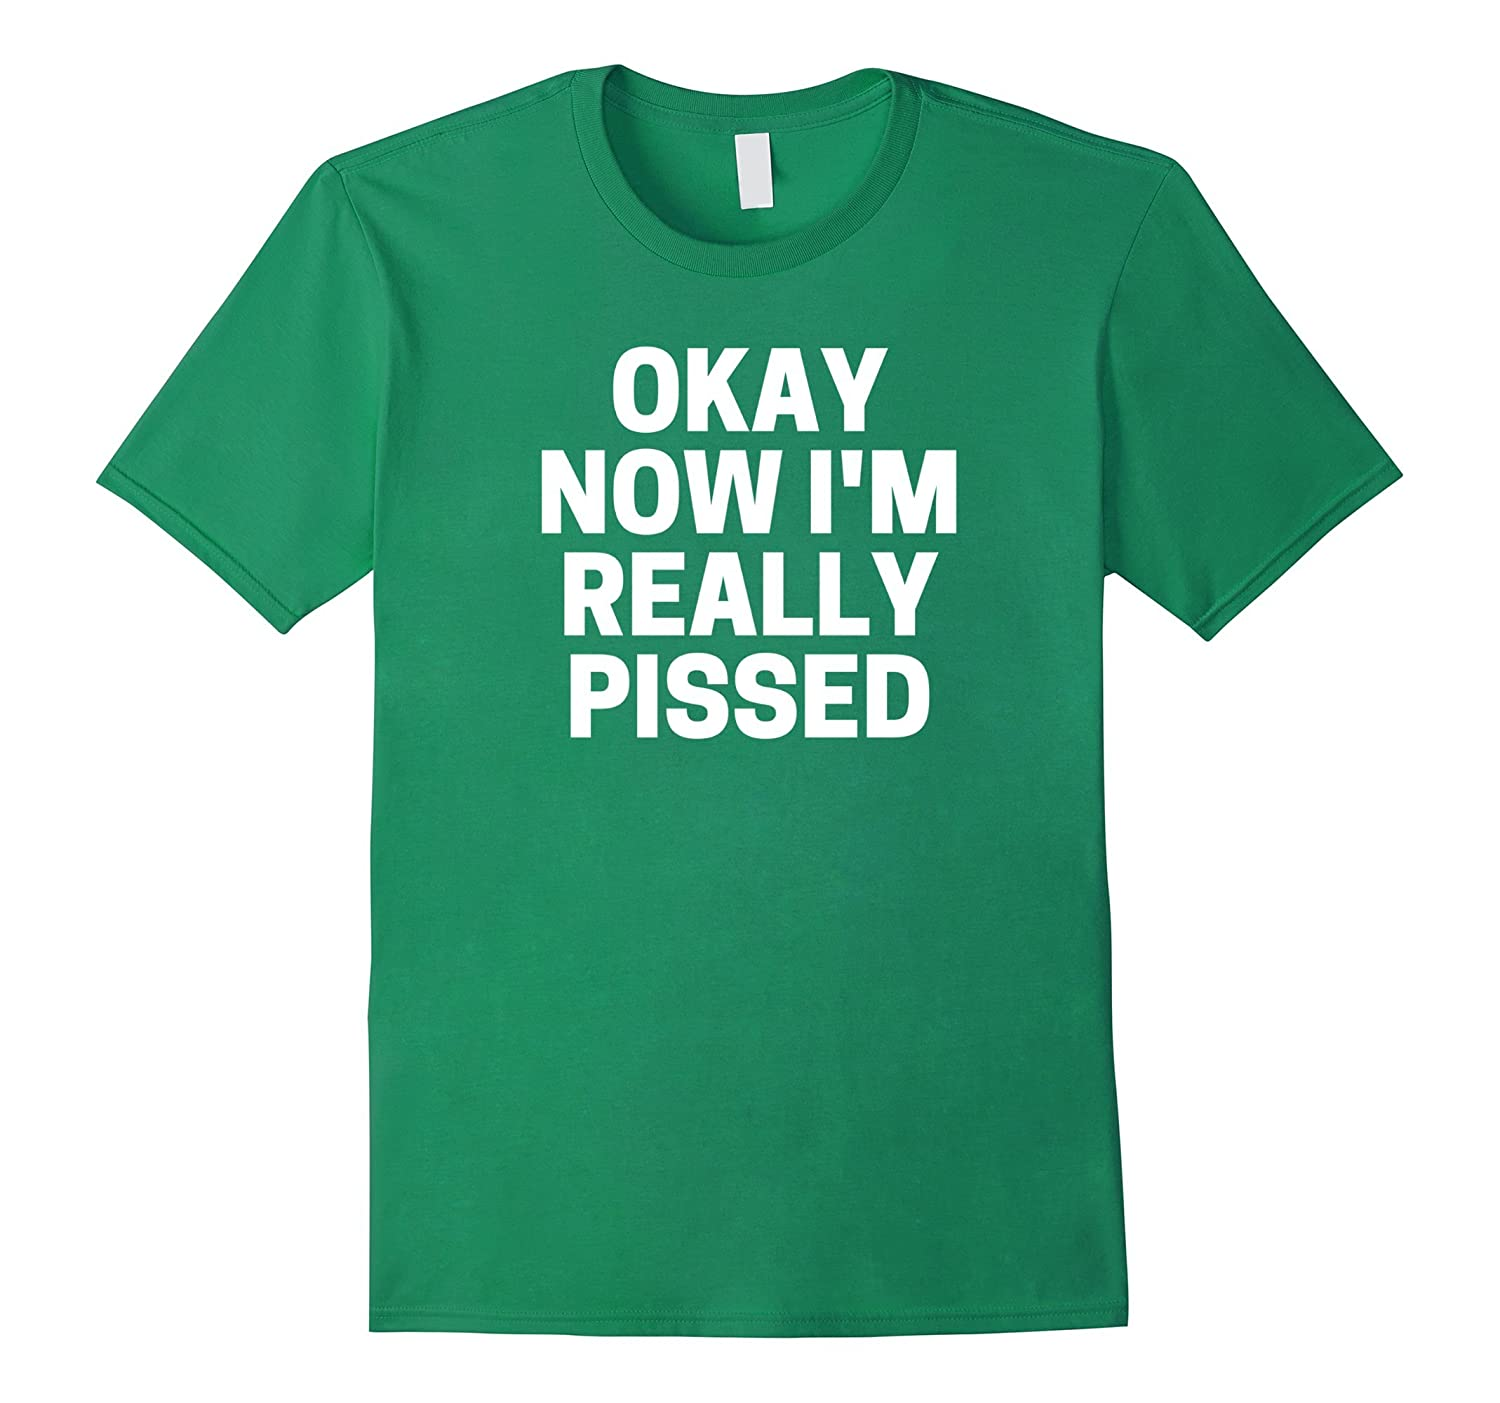 Now I'm Really Pissed T-Shirt, Funny Novelty Angry Tee-RT